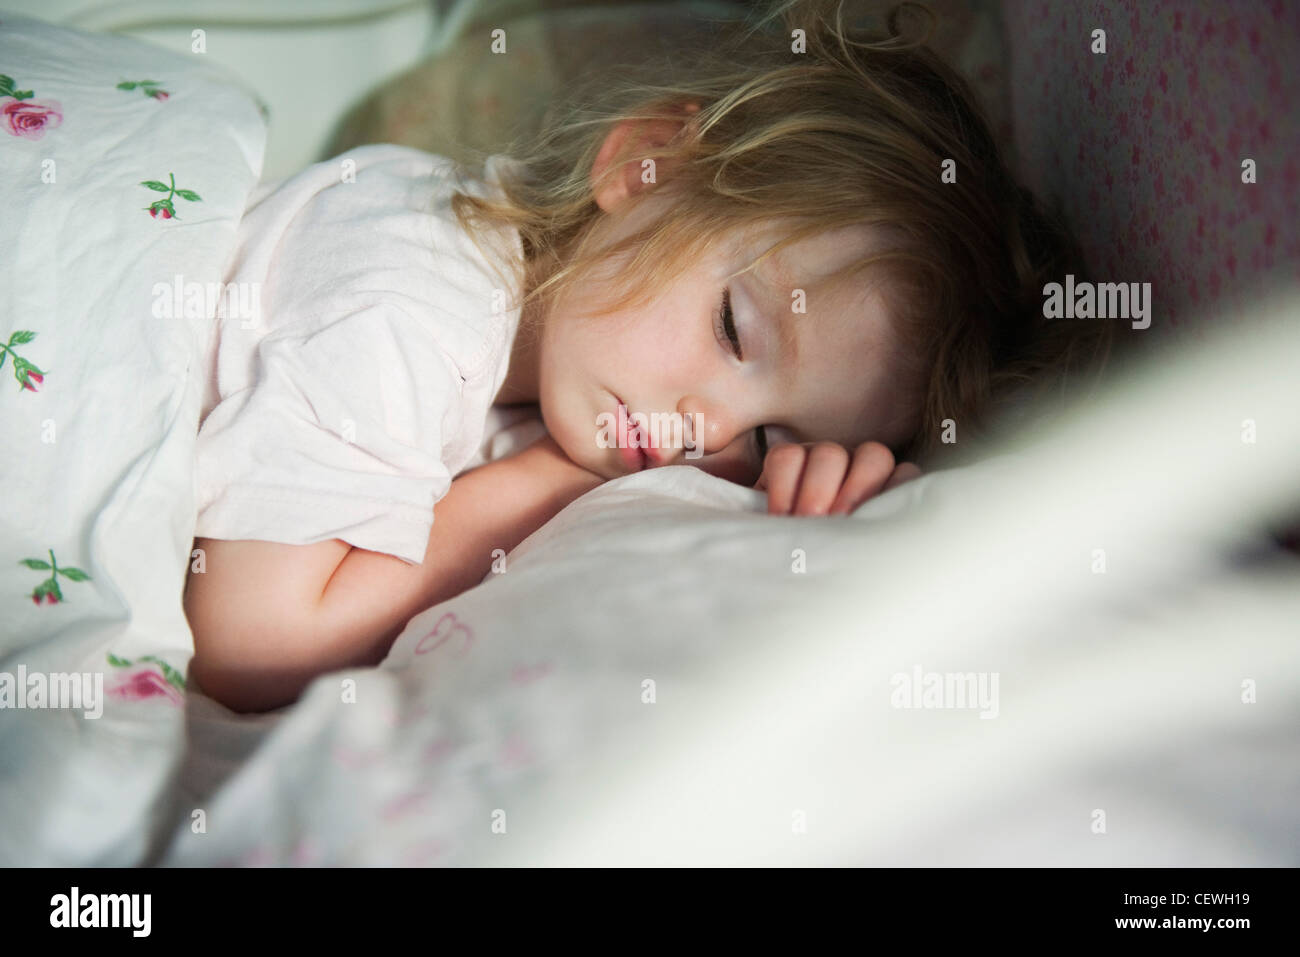 Toddler sleeping in bed - Stock Image